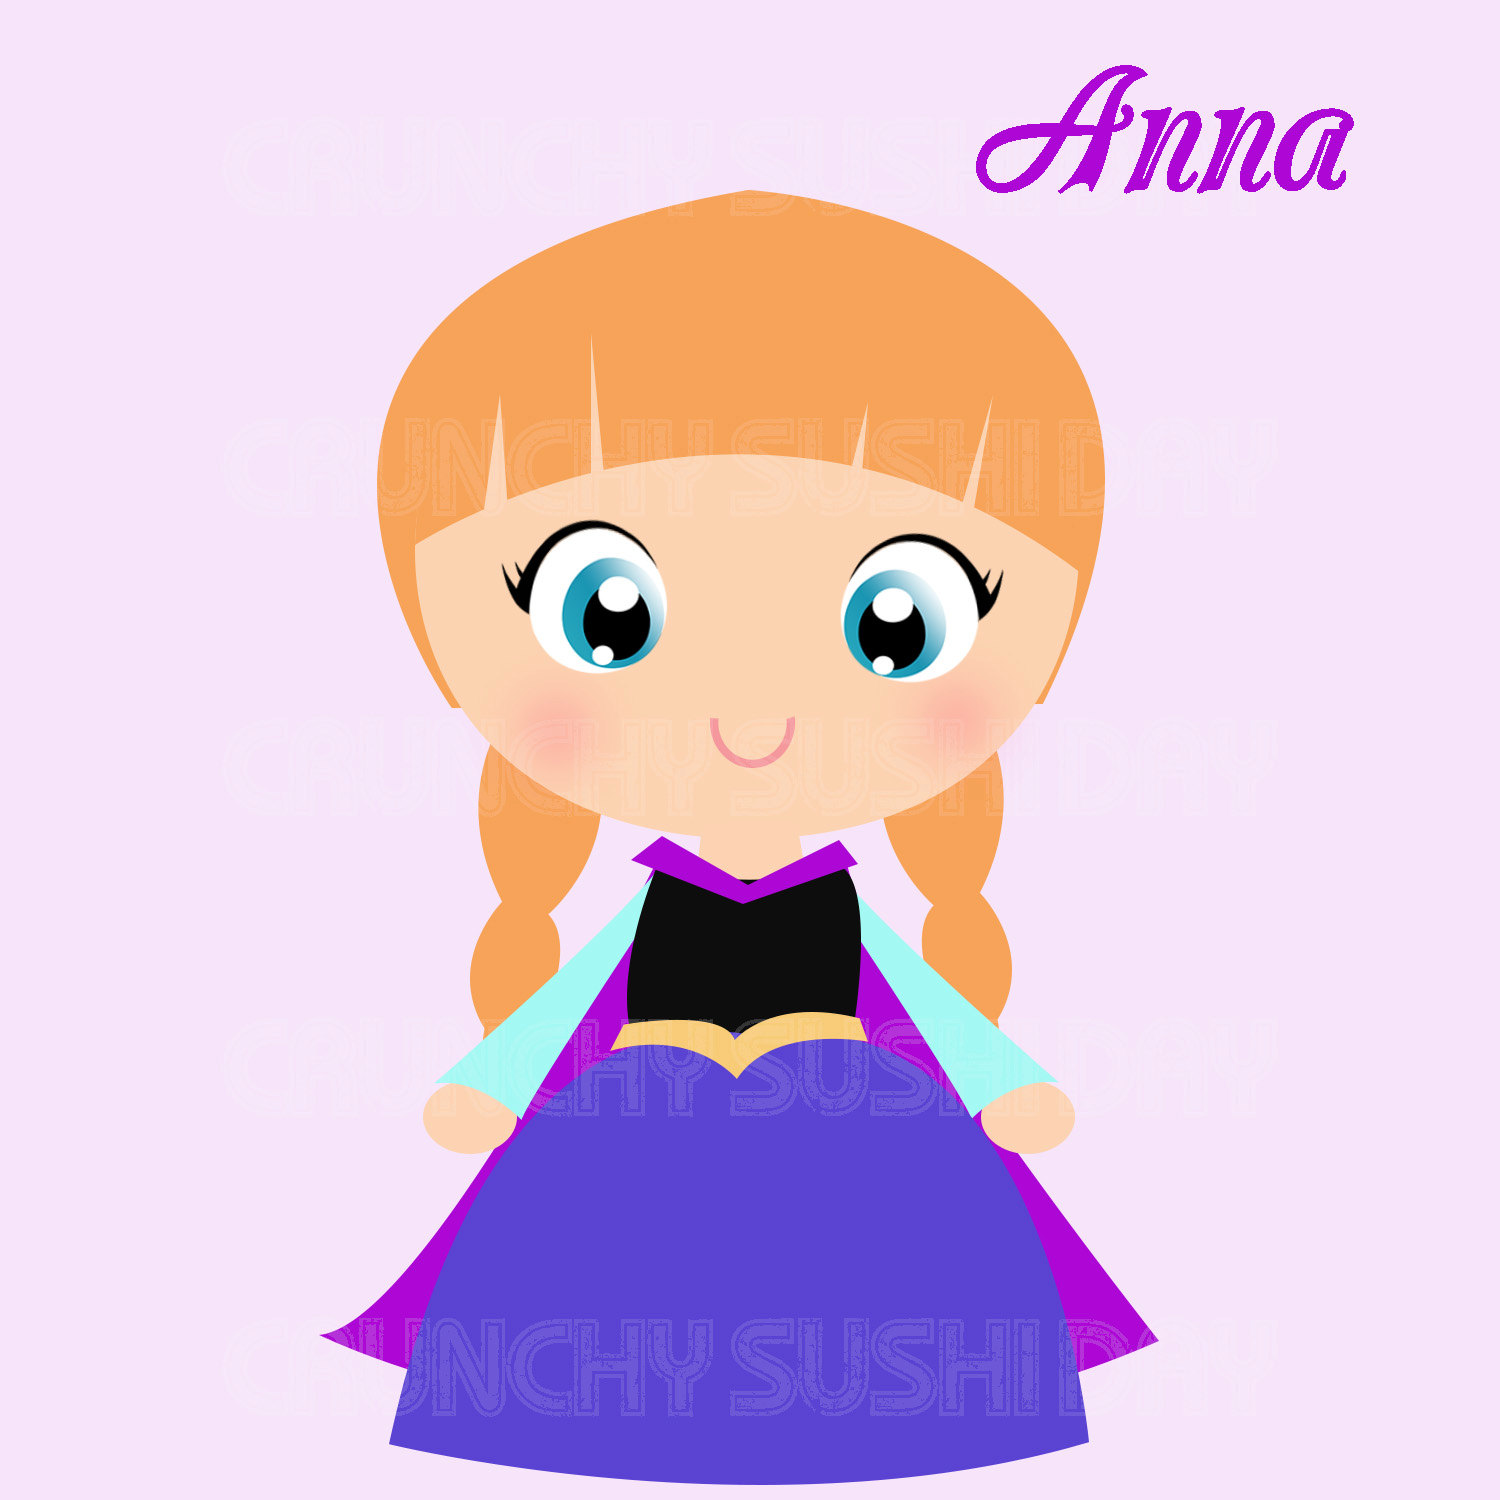 Princess Anna Frozen Cute Kawaii Princess Digital Graphic Clipart